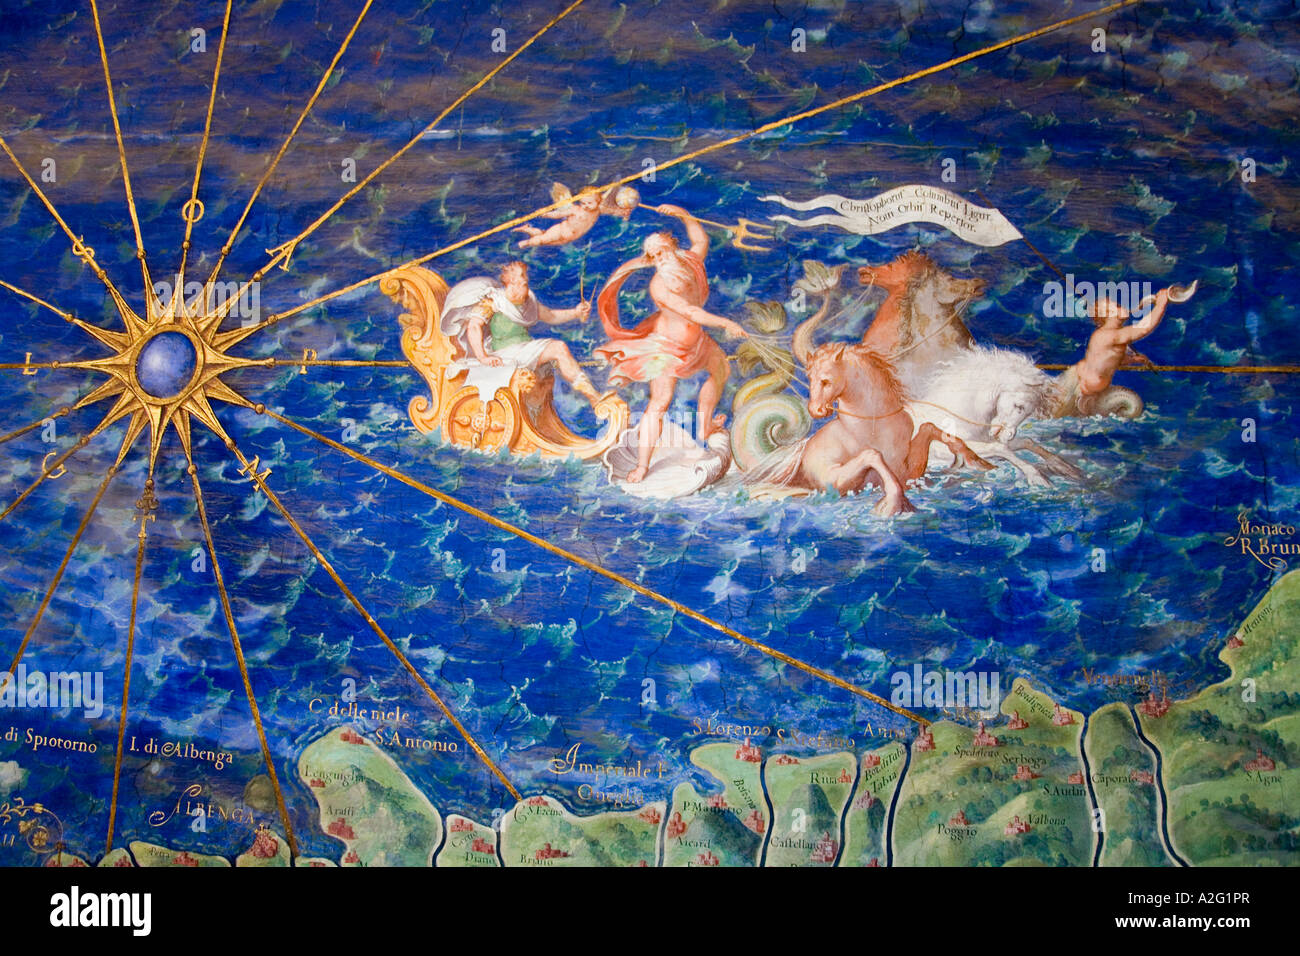 Detail of antique map of Liguria painting in Vatican Museum Room of Maps by Ignazio Danti (1536-1586) The Vatican - Stock Image